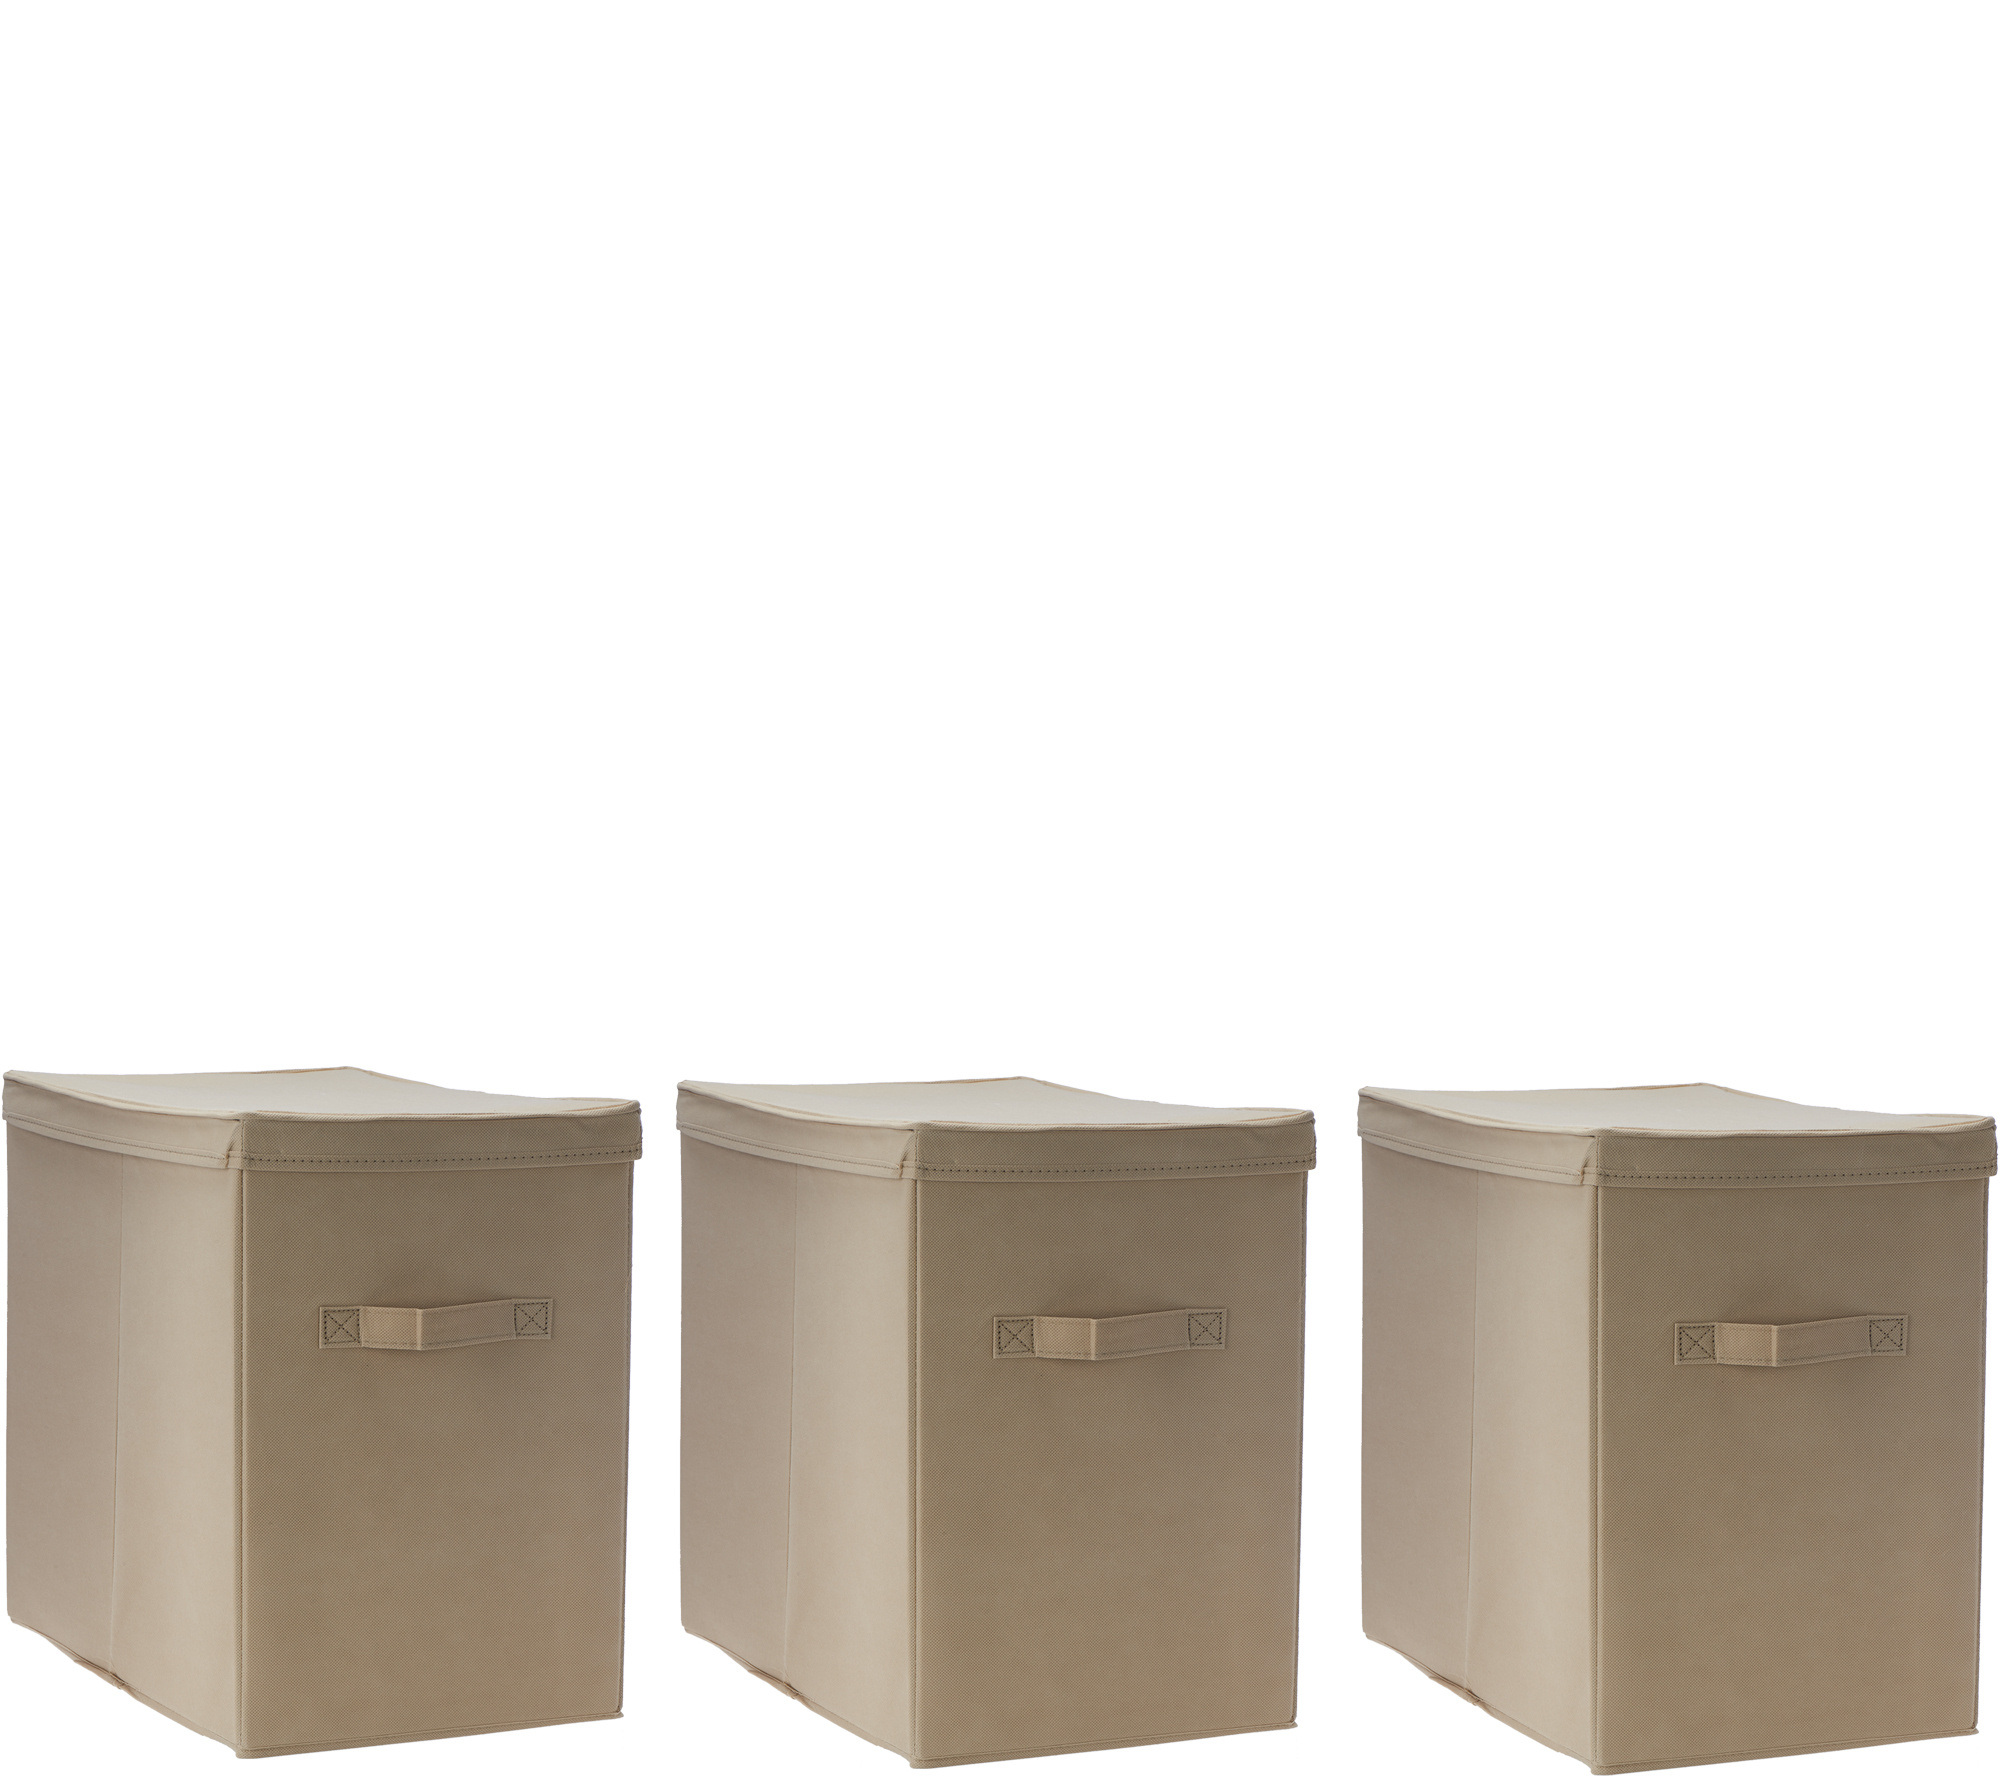 Pop It Set of 3 Collapsible Storage Bins with Lids Page 1 QVCcom